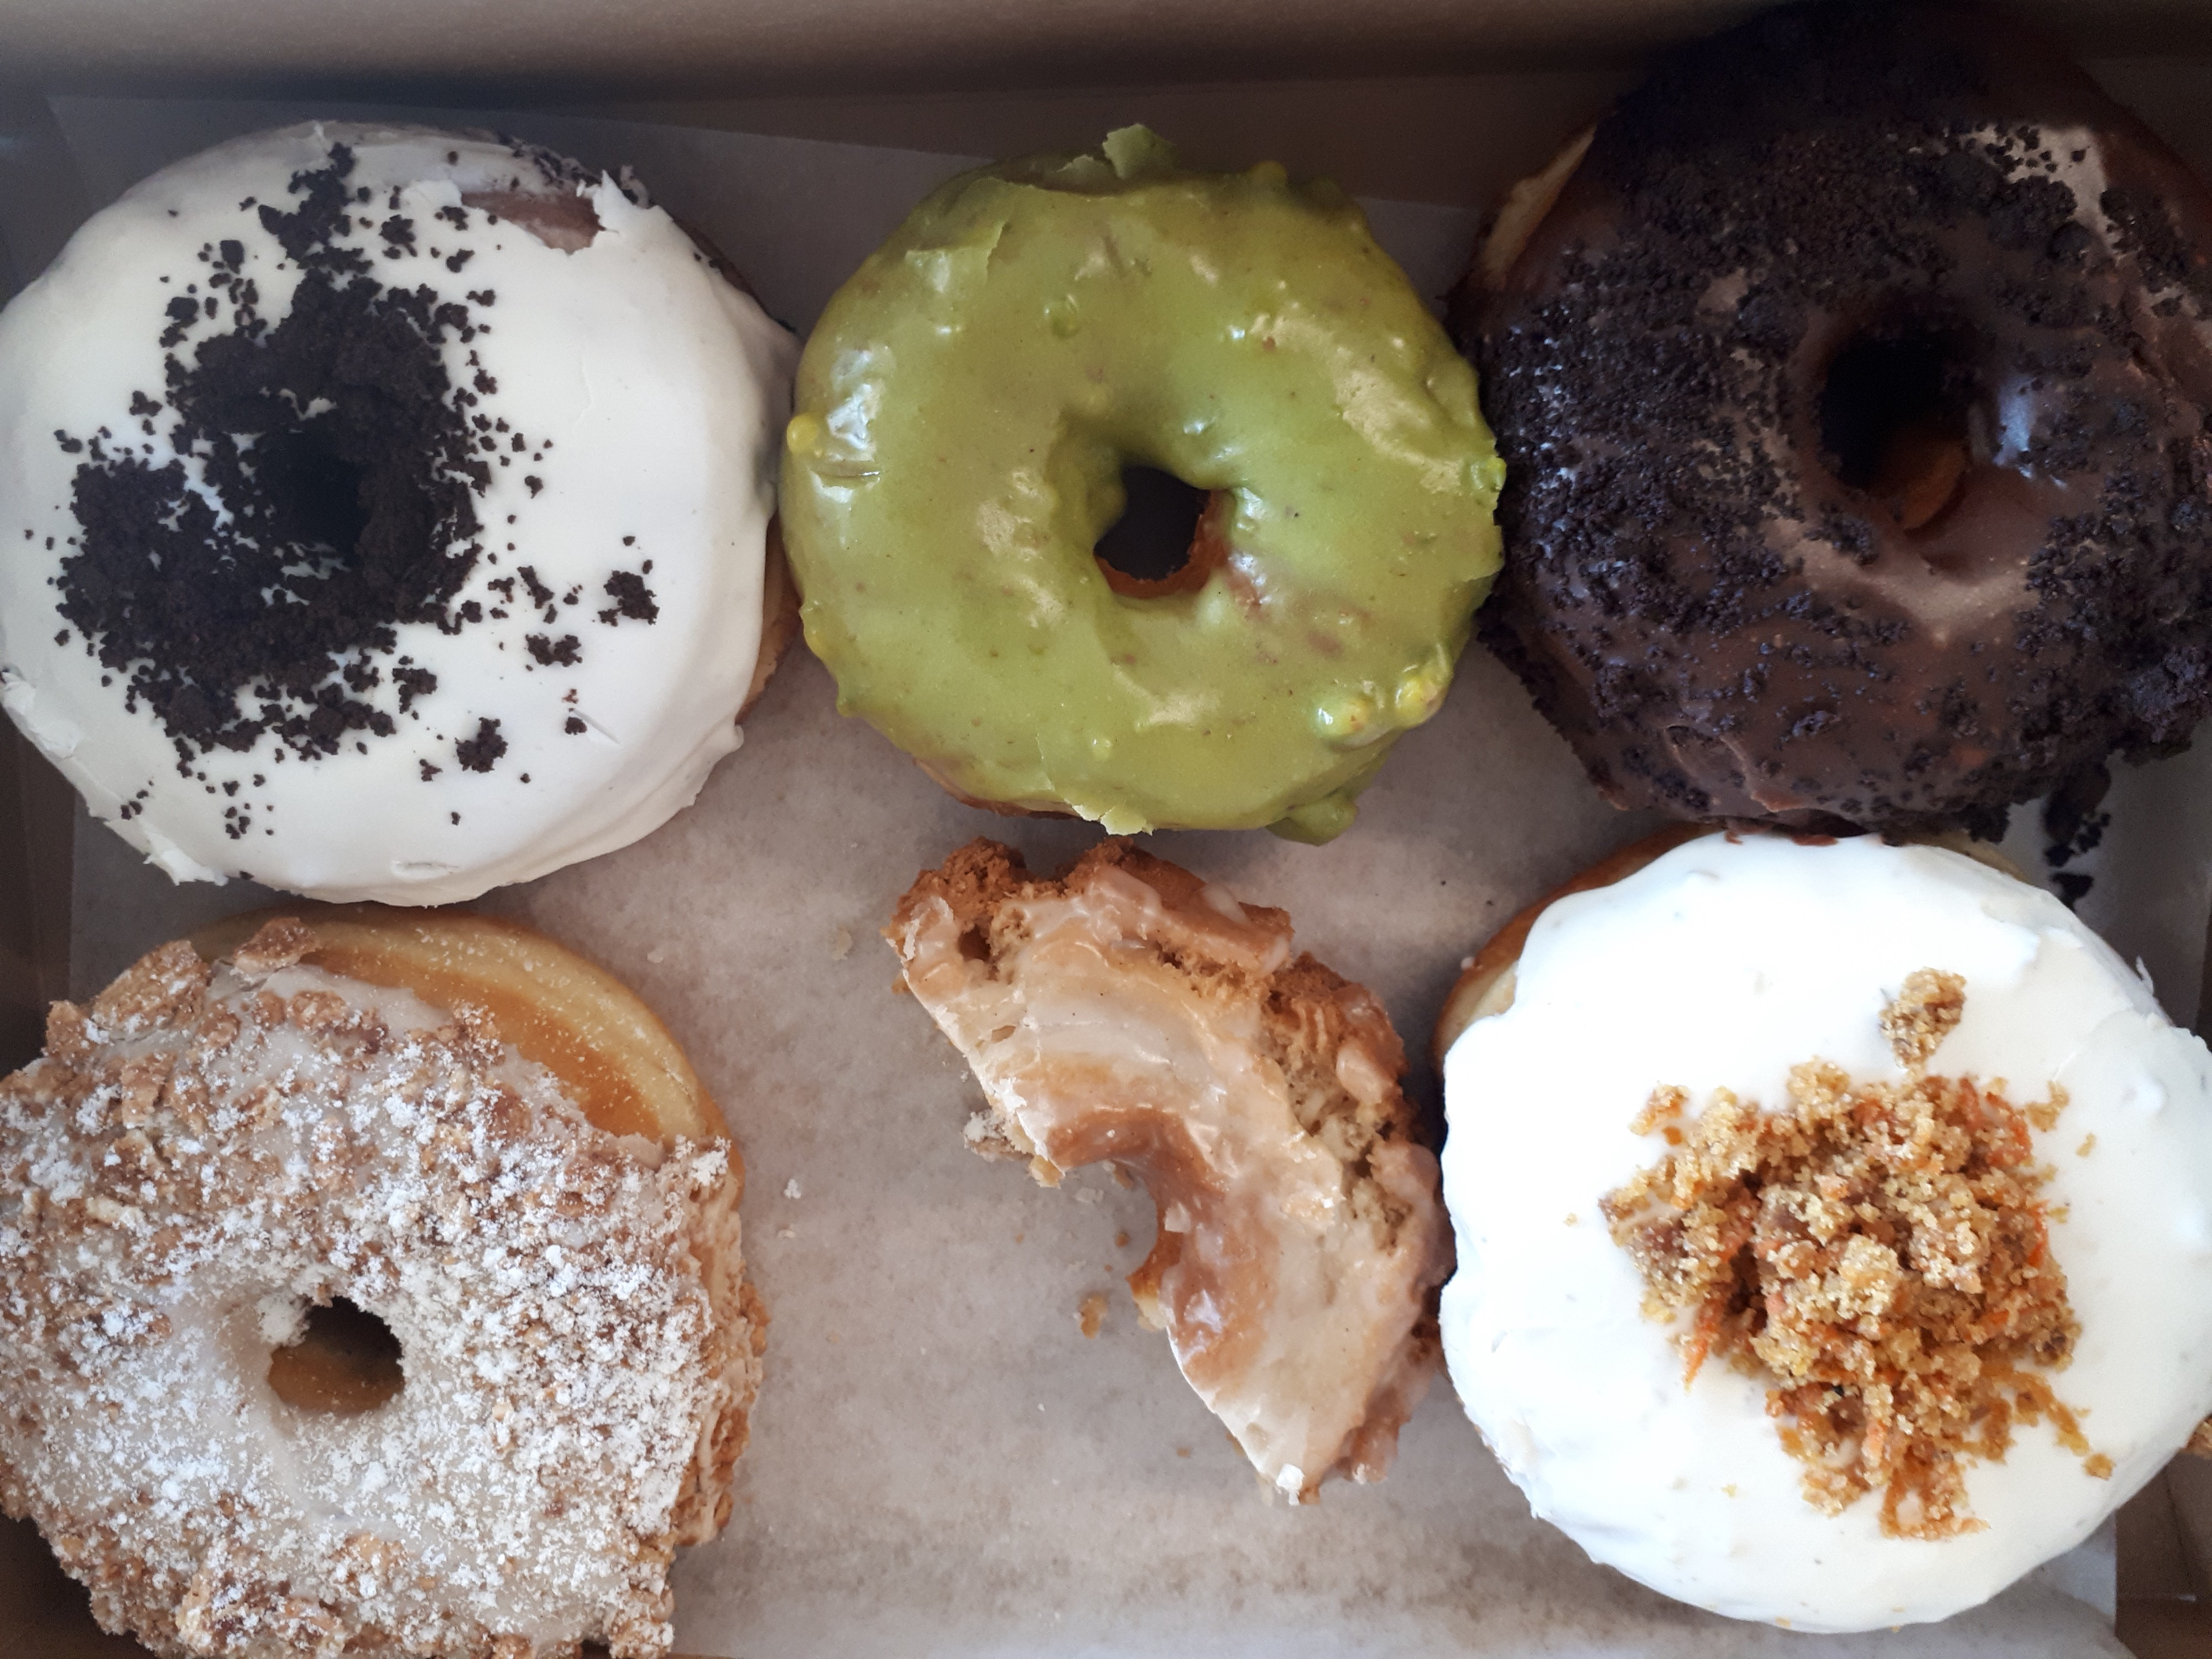 A photo of 6 colourful doughnuts; one is half eaten.